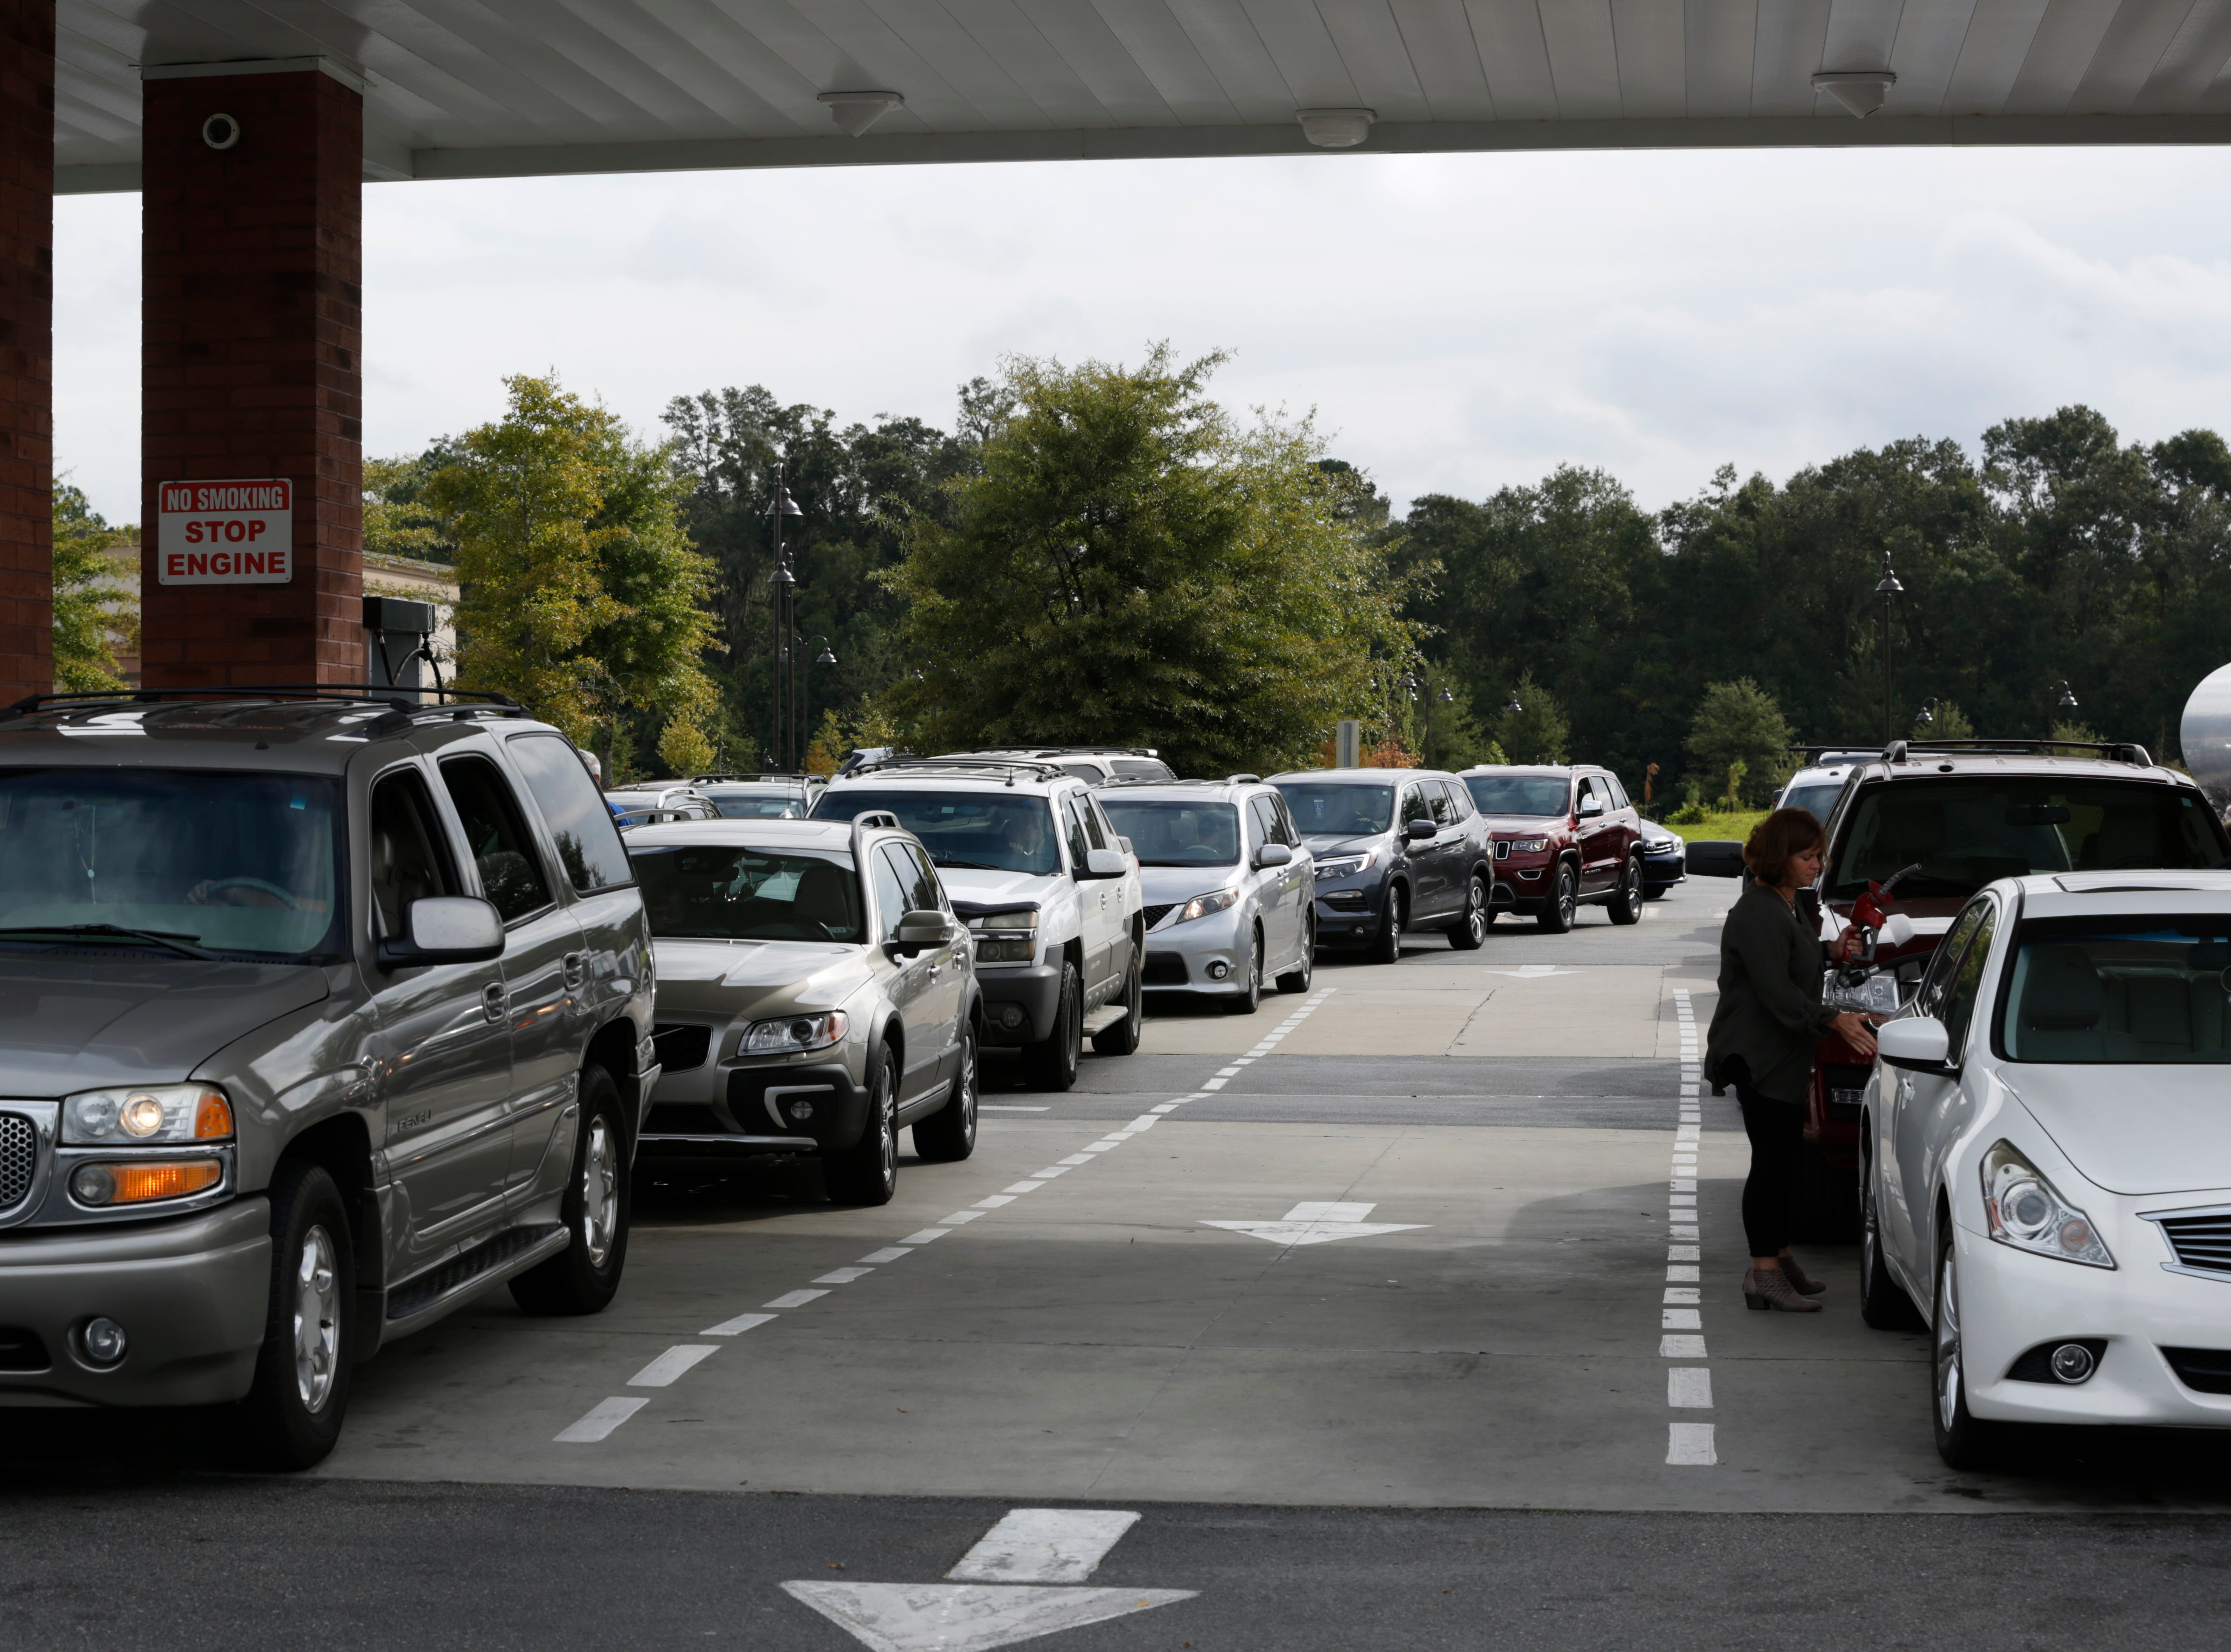 Cars line up at Costco to fill up with gas as Hurricane Michael heads toward the Florida coast Monday, Oct. 8, 2018.